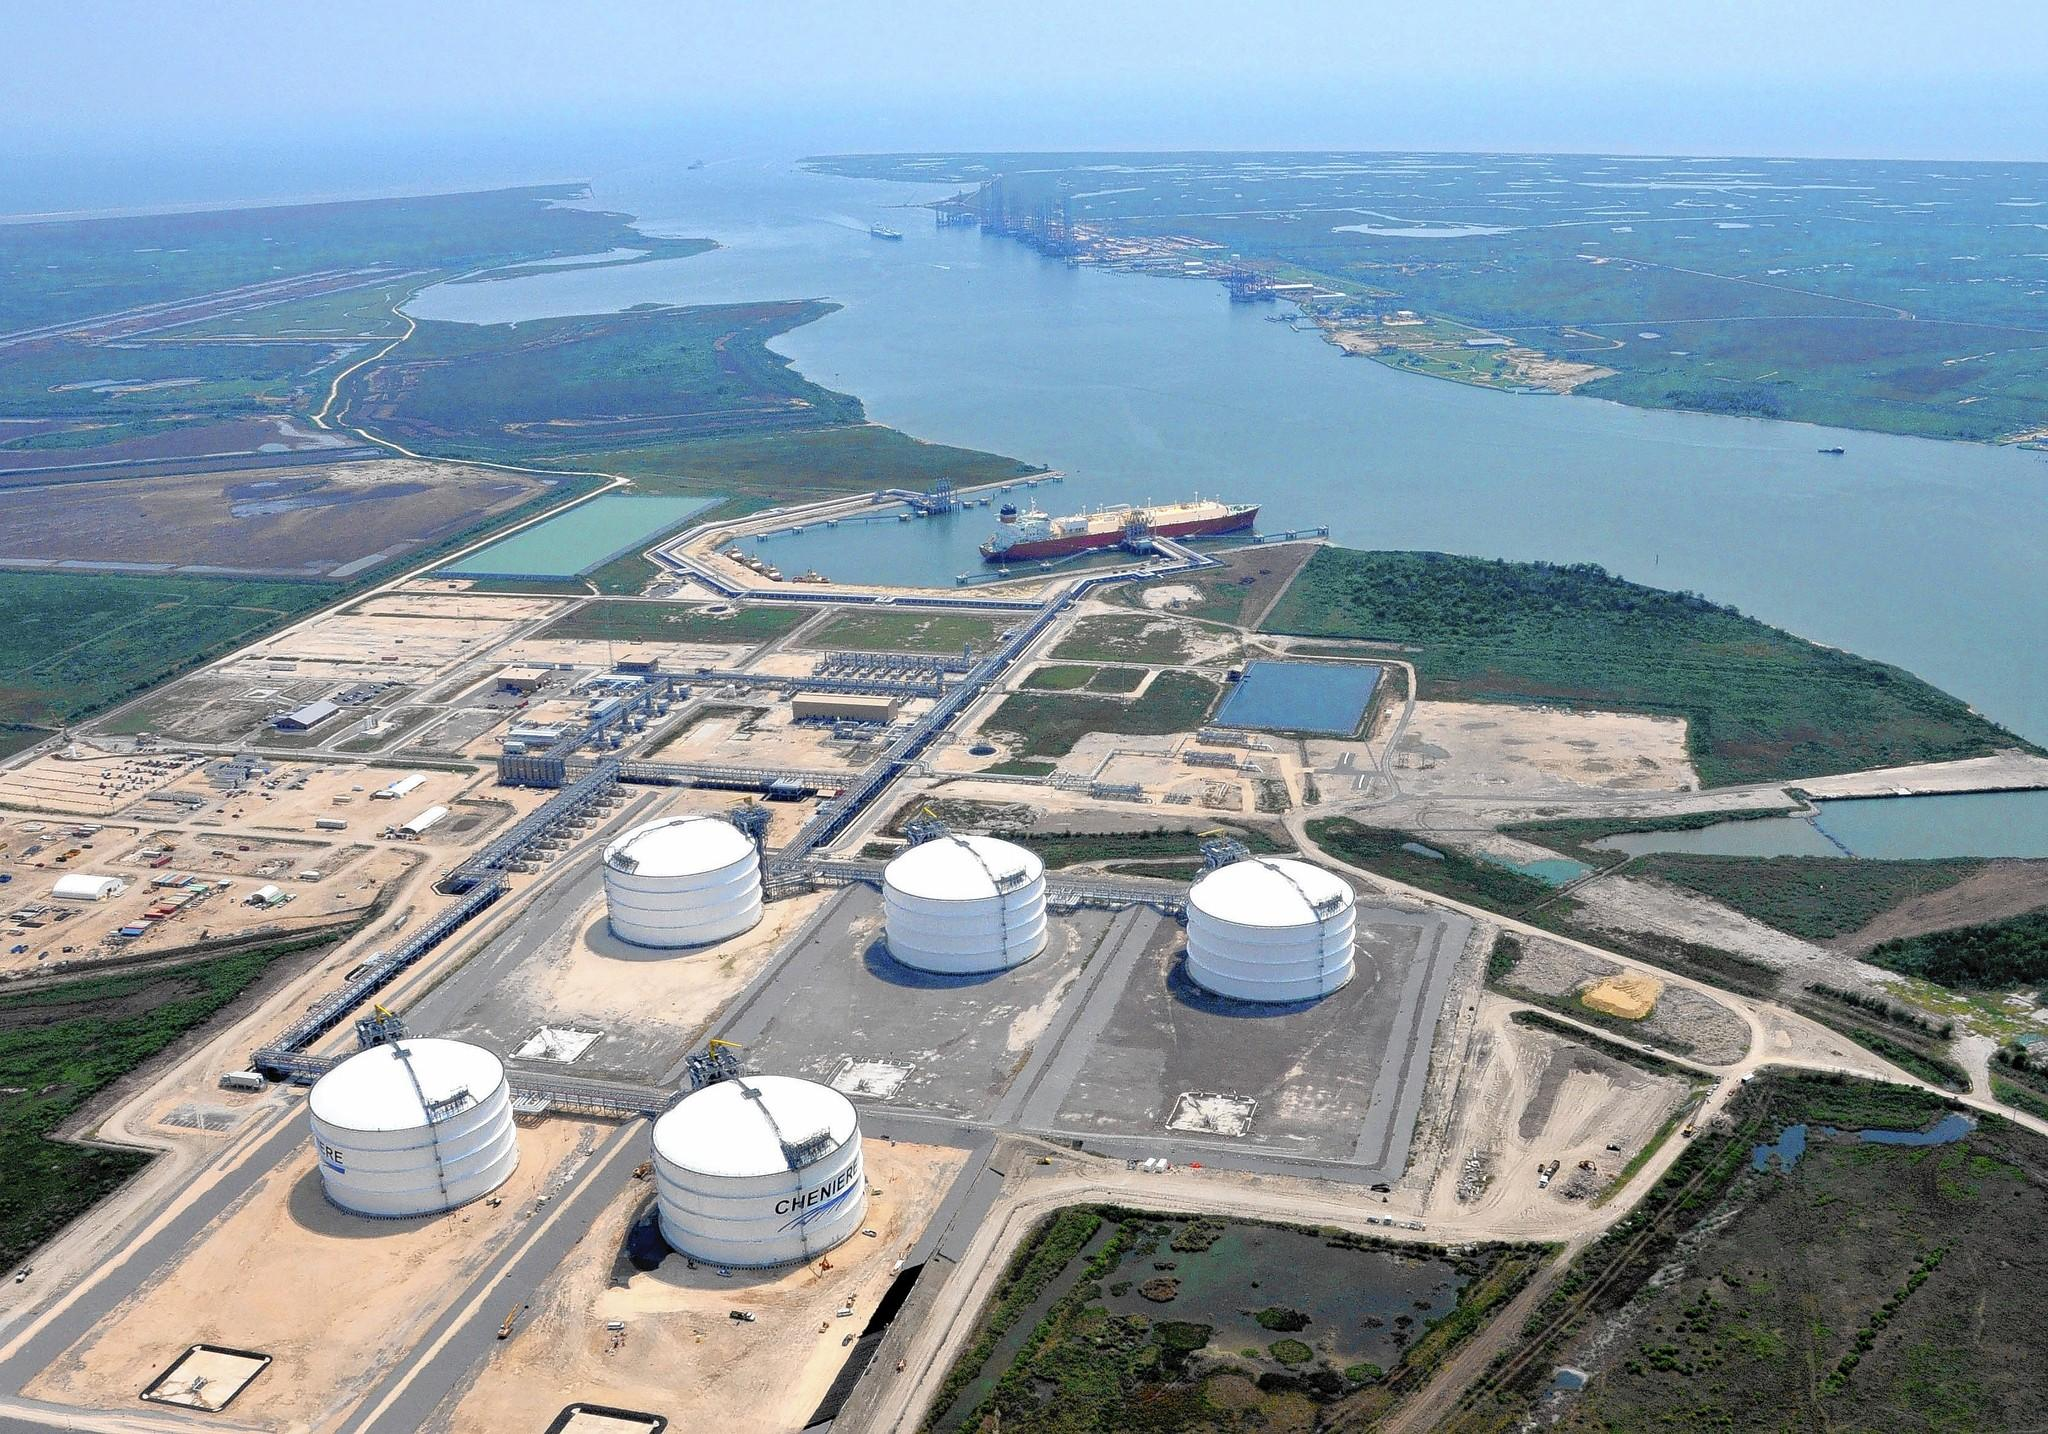 A liquefied natural gas plant under construction by Cheniere Energy Inc. in Louisiana is the first large-scale export facility approved in the country, expected to begin operation next year. Twenty-one other proposed plants are awaiting federal approval.